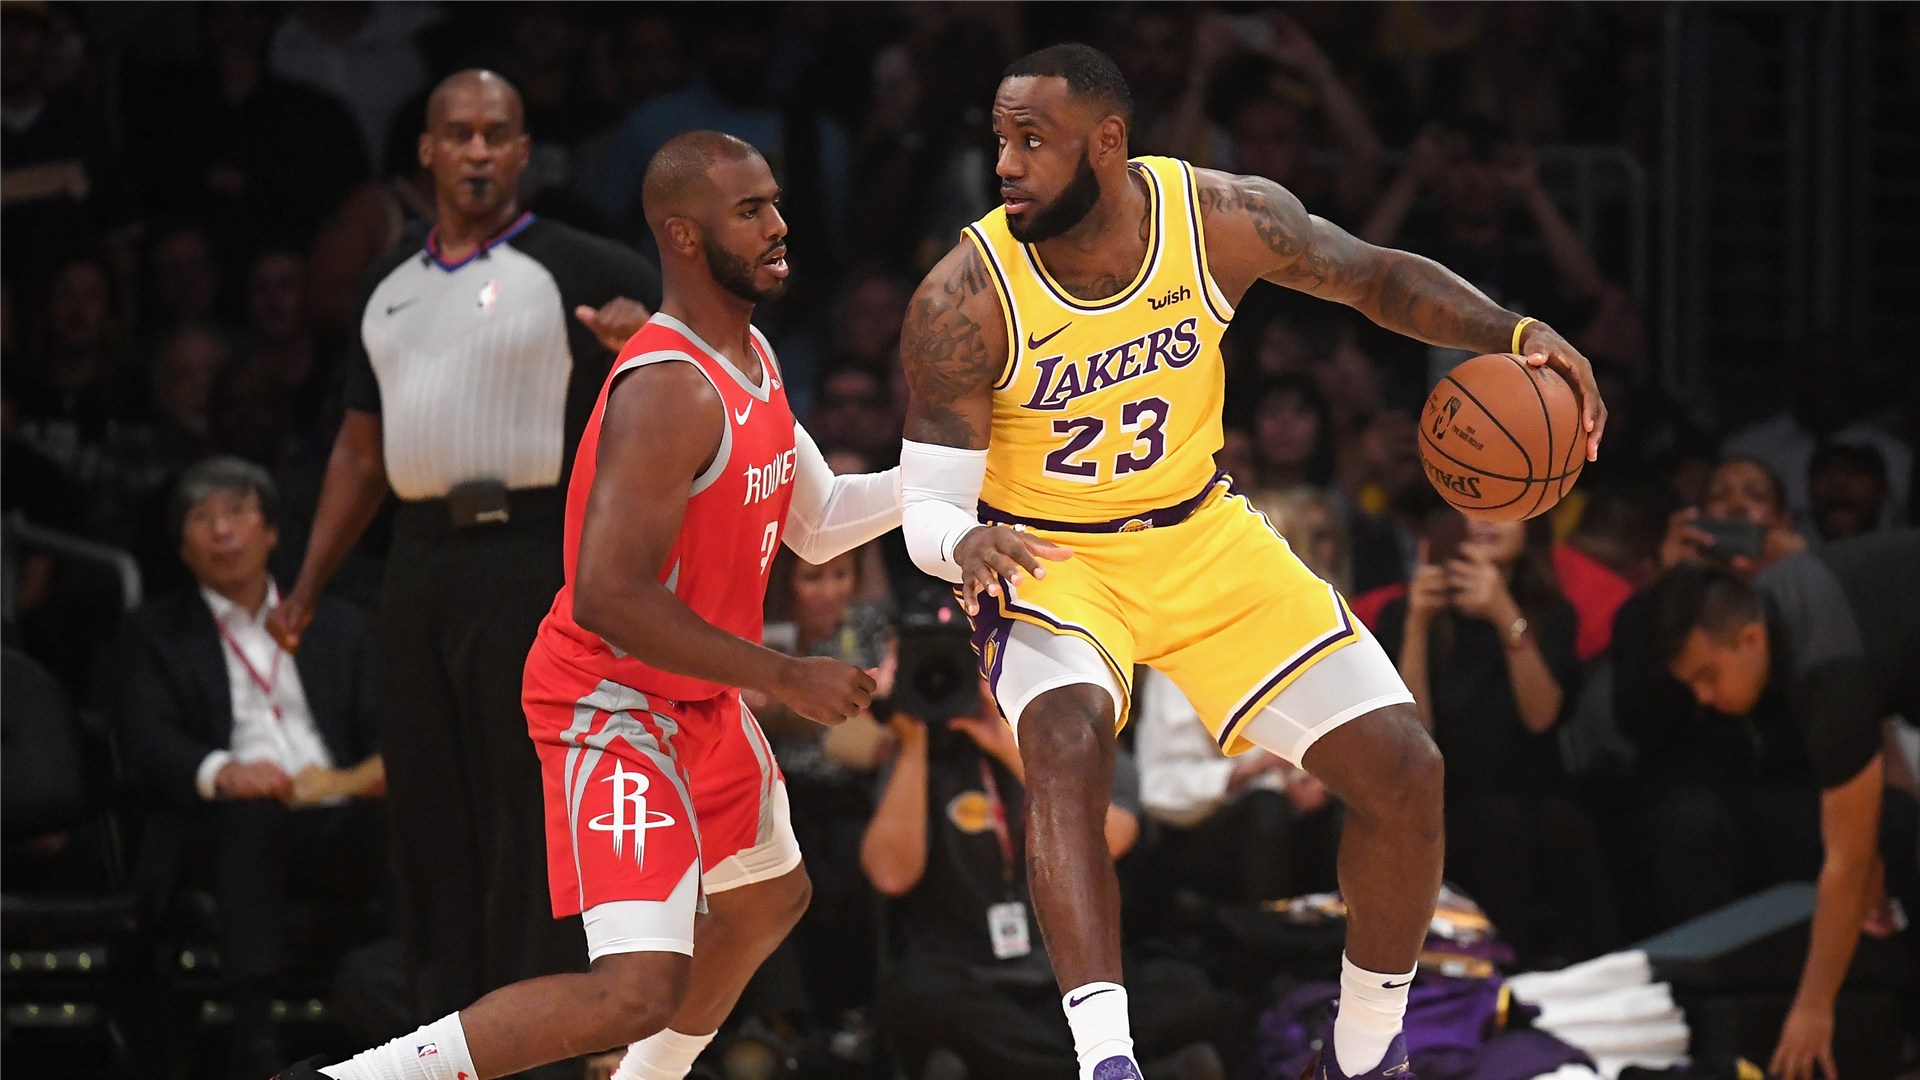 Chris Paul guards LeBron James